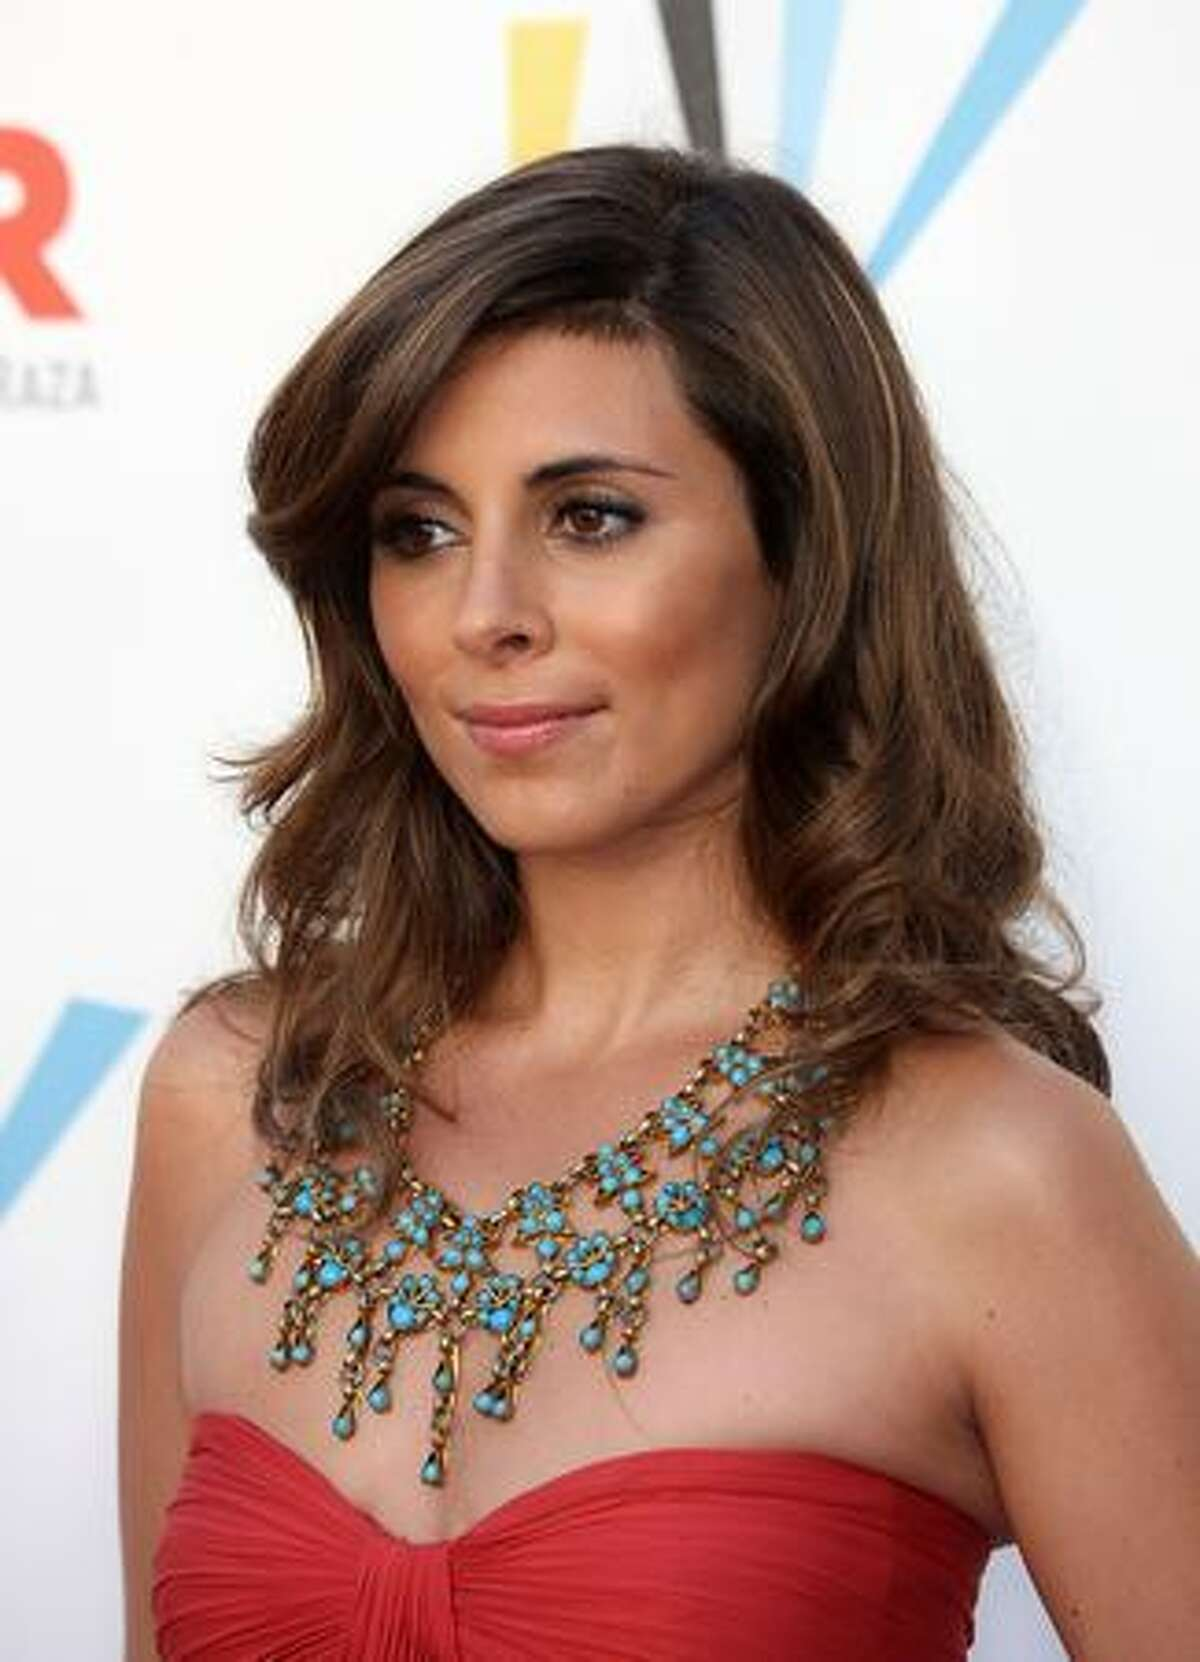 Actress Jamie-Lynn Sigler arrives at the 2009 ALMA Awards held at Royce Hall in Los Angeles, California.